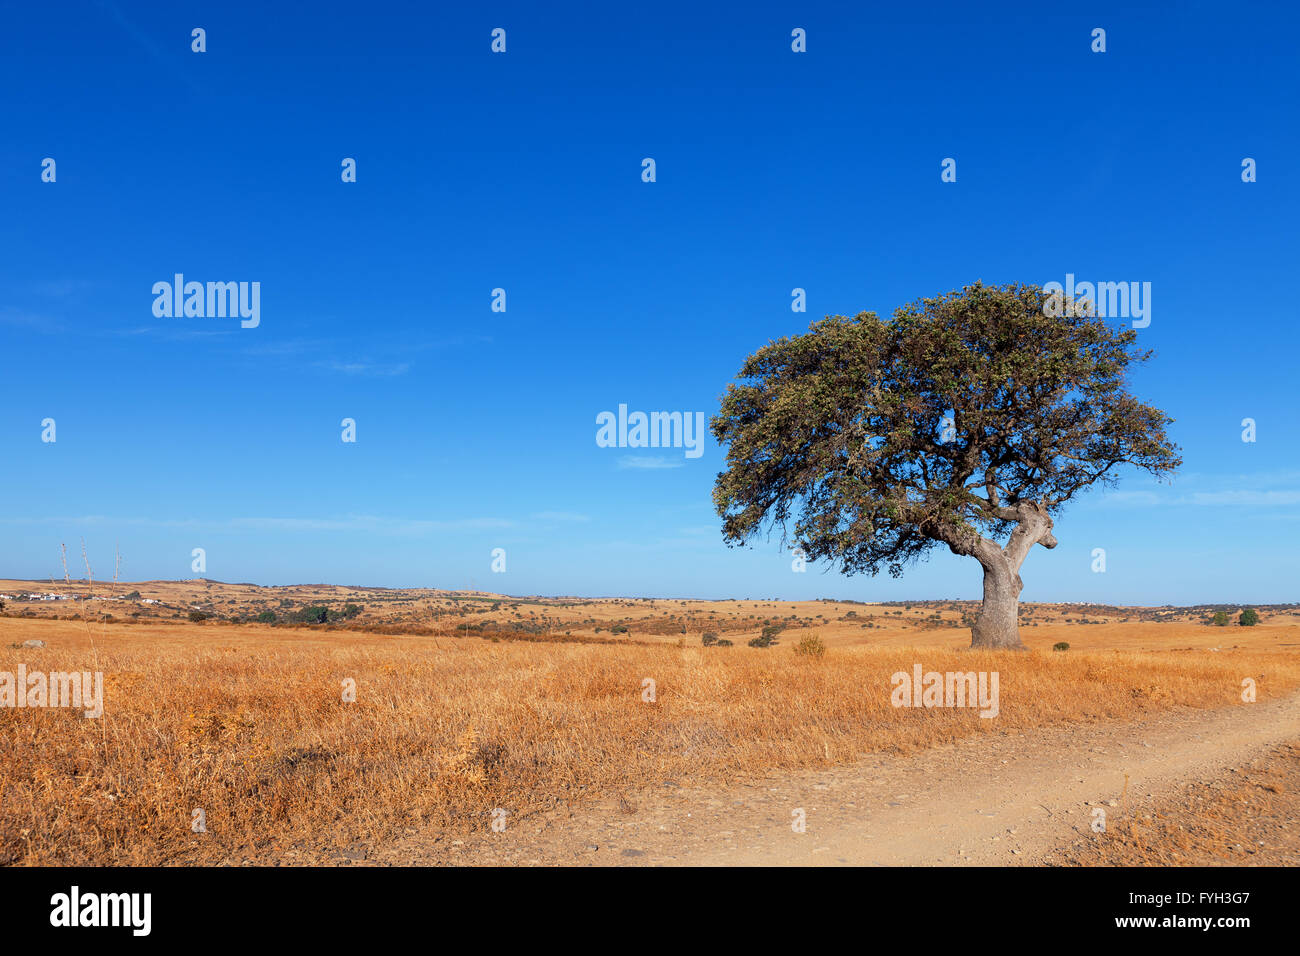 Single tree in a wheat field on a background of blue sky - Stock Image